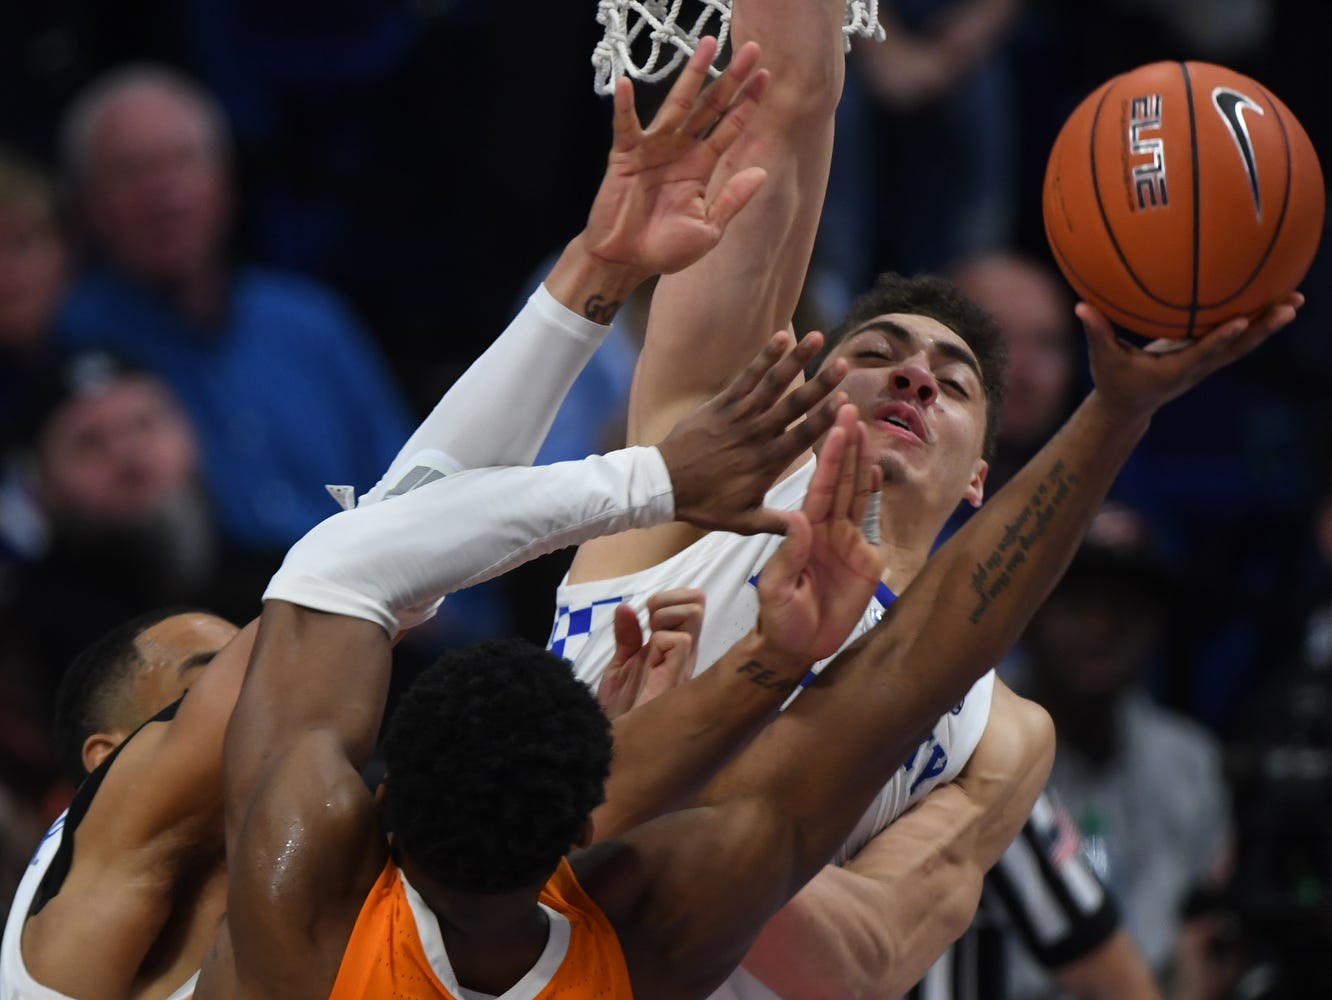 UK F Reid Travis gets a block during the University of Kentucky mens basketball game against Tennessee at Rupp Arena in Lexington, Kentucky on Saturday, February 16, 2019.